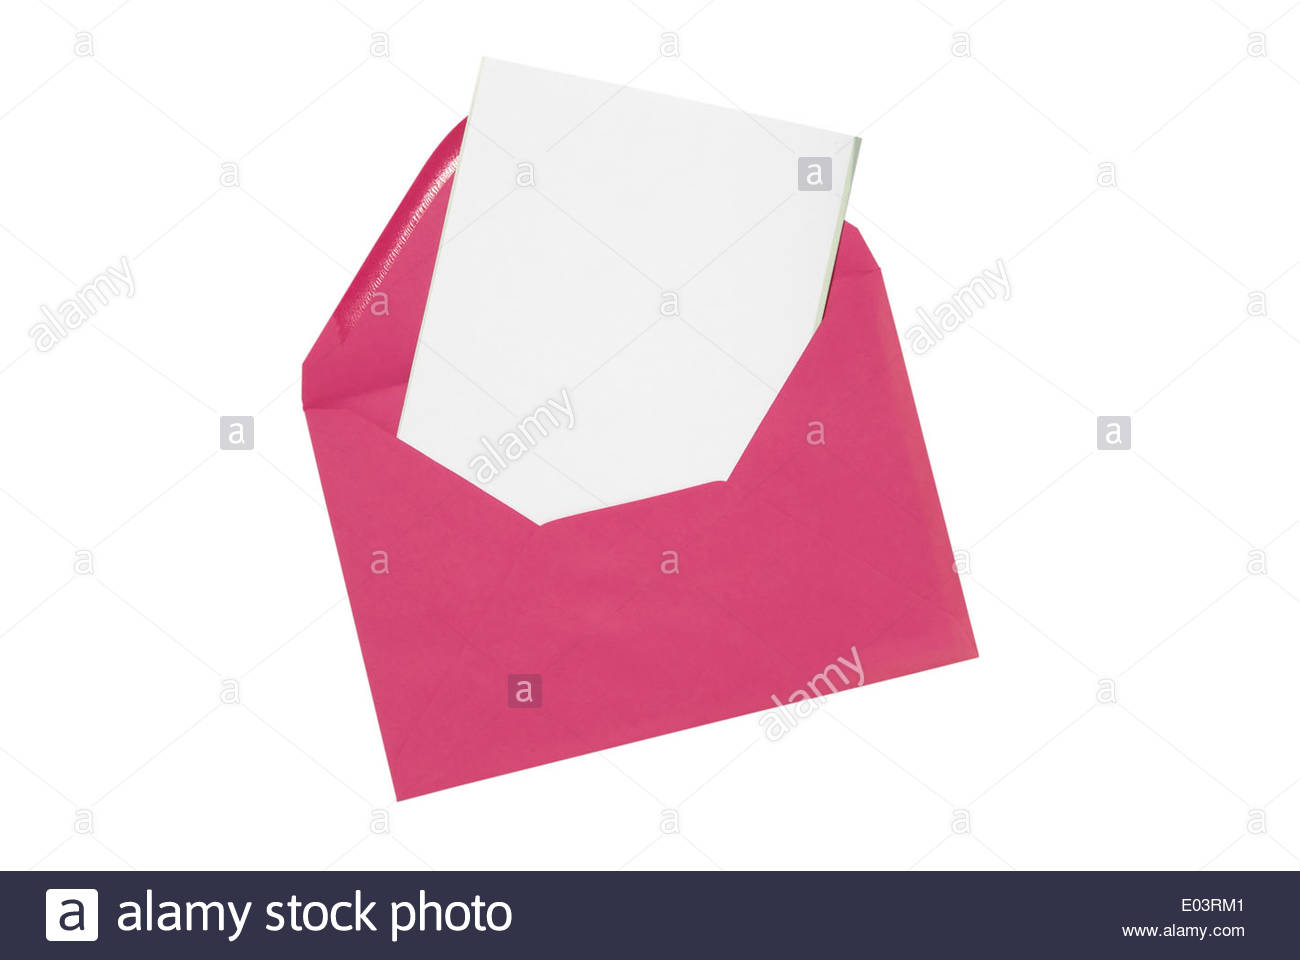 Invitation card cut out stock photos invitation card cut out stock pink envelope with a plain card pulled out on white background stock image stopboris Images